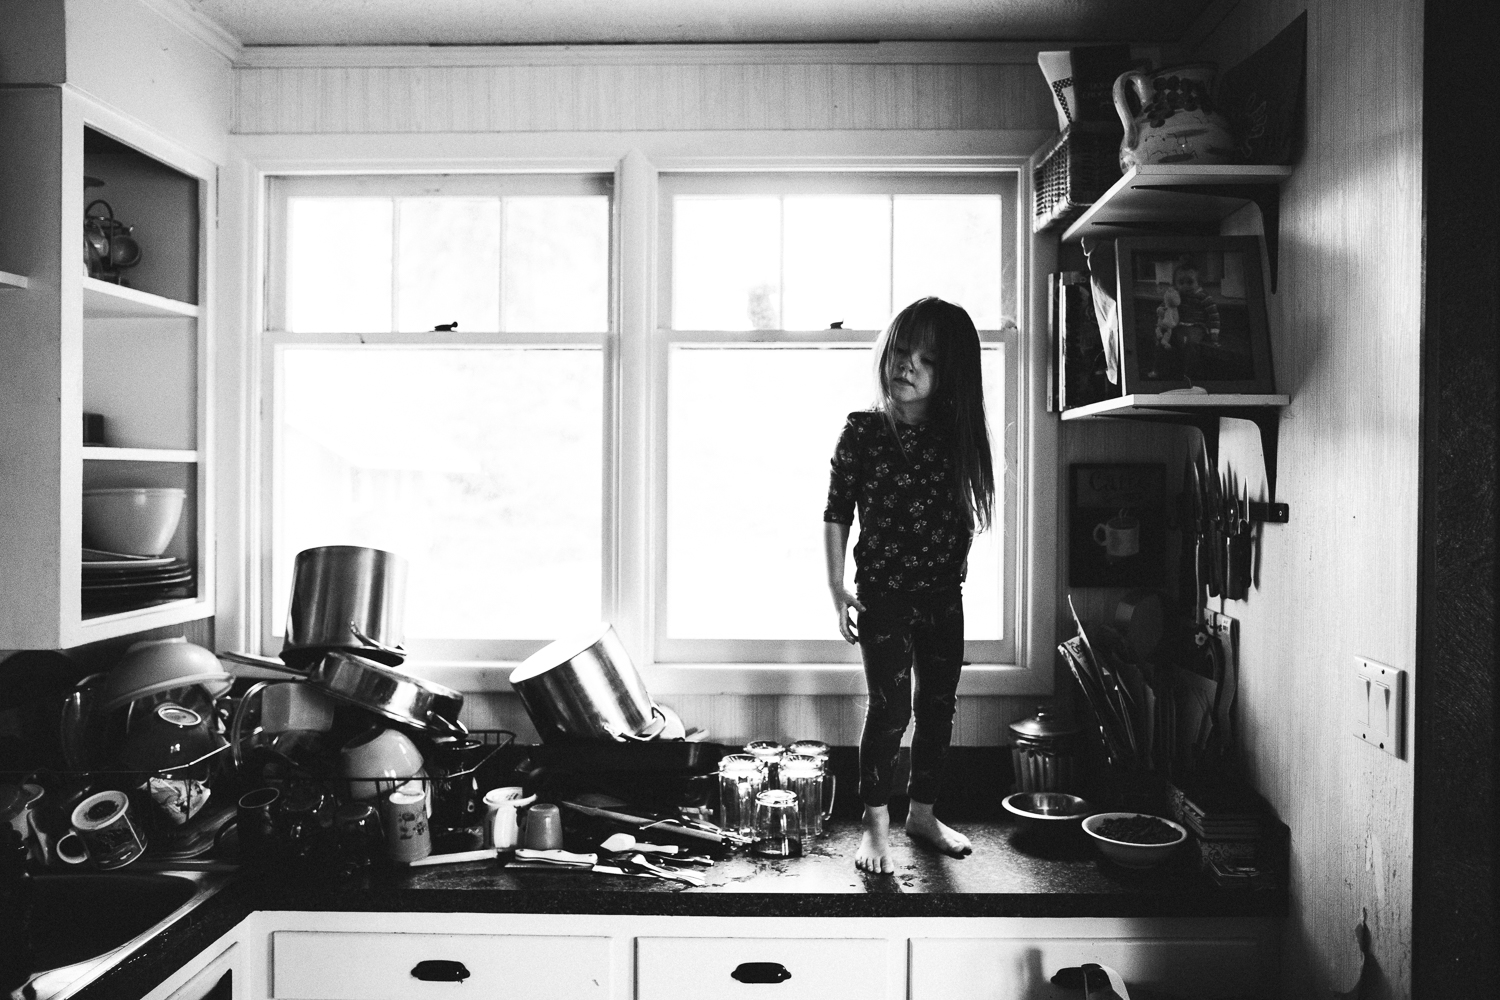 girl with long brown hair on counter